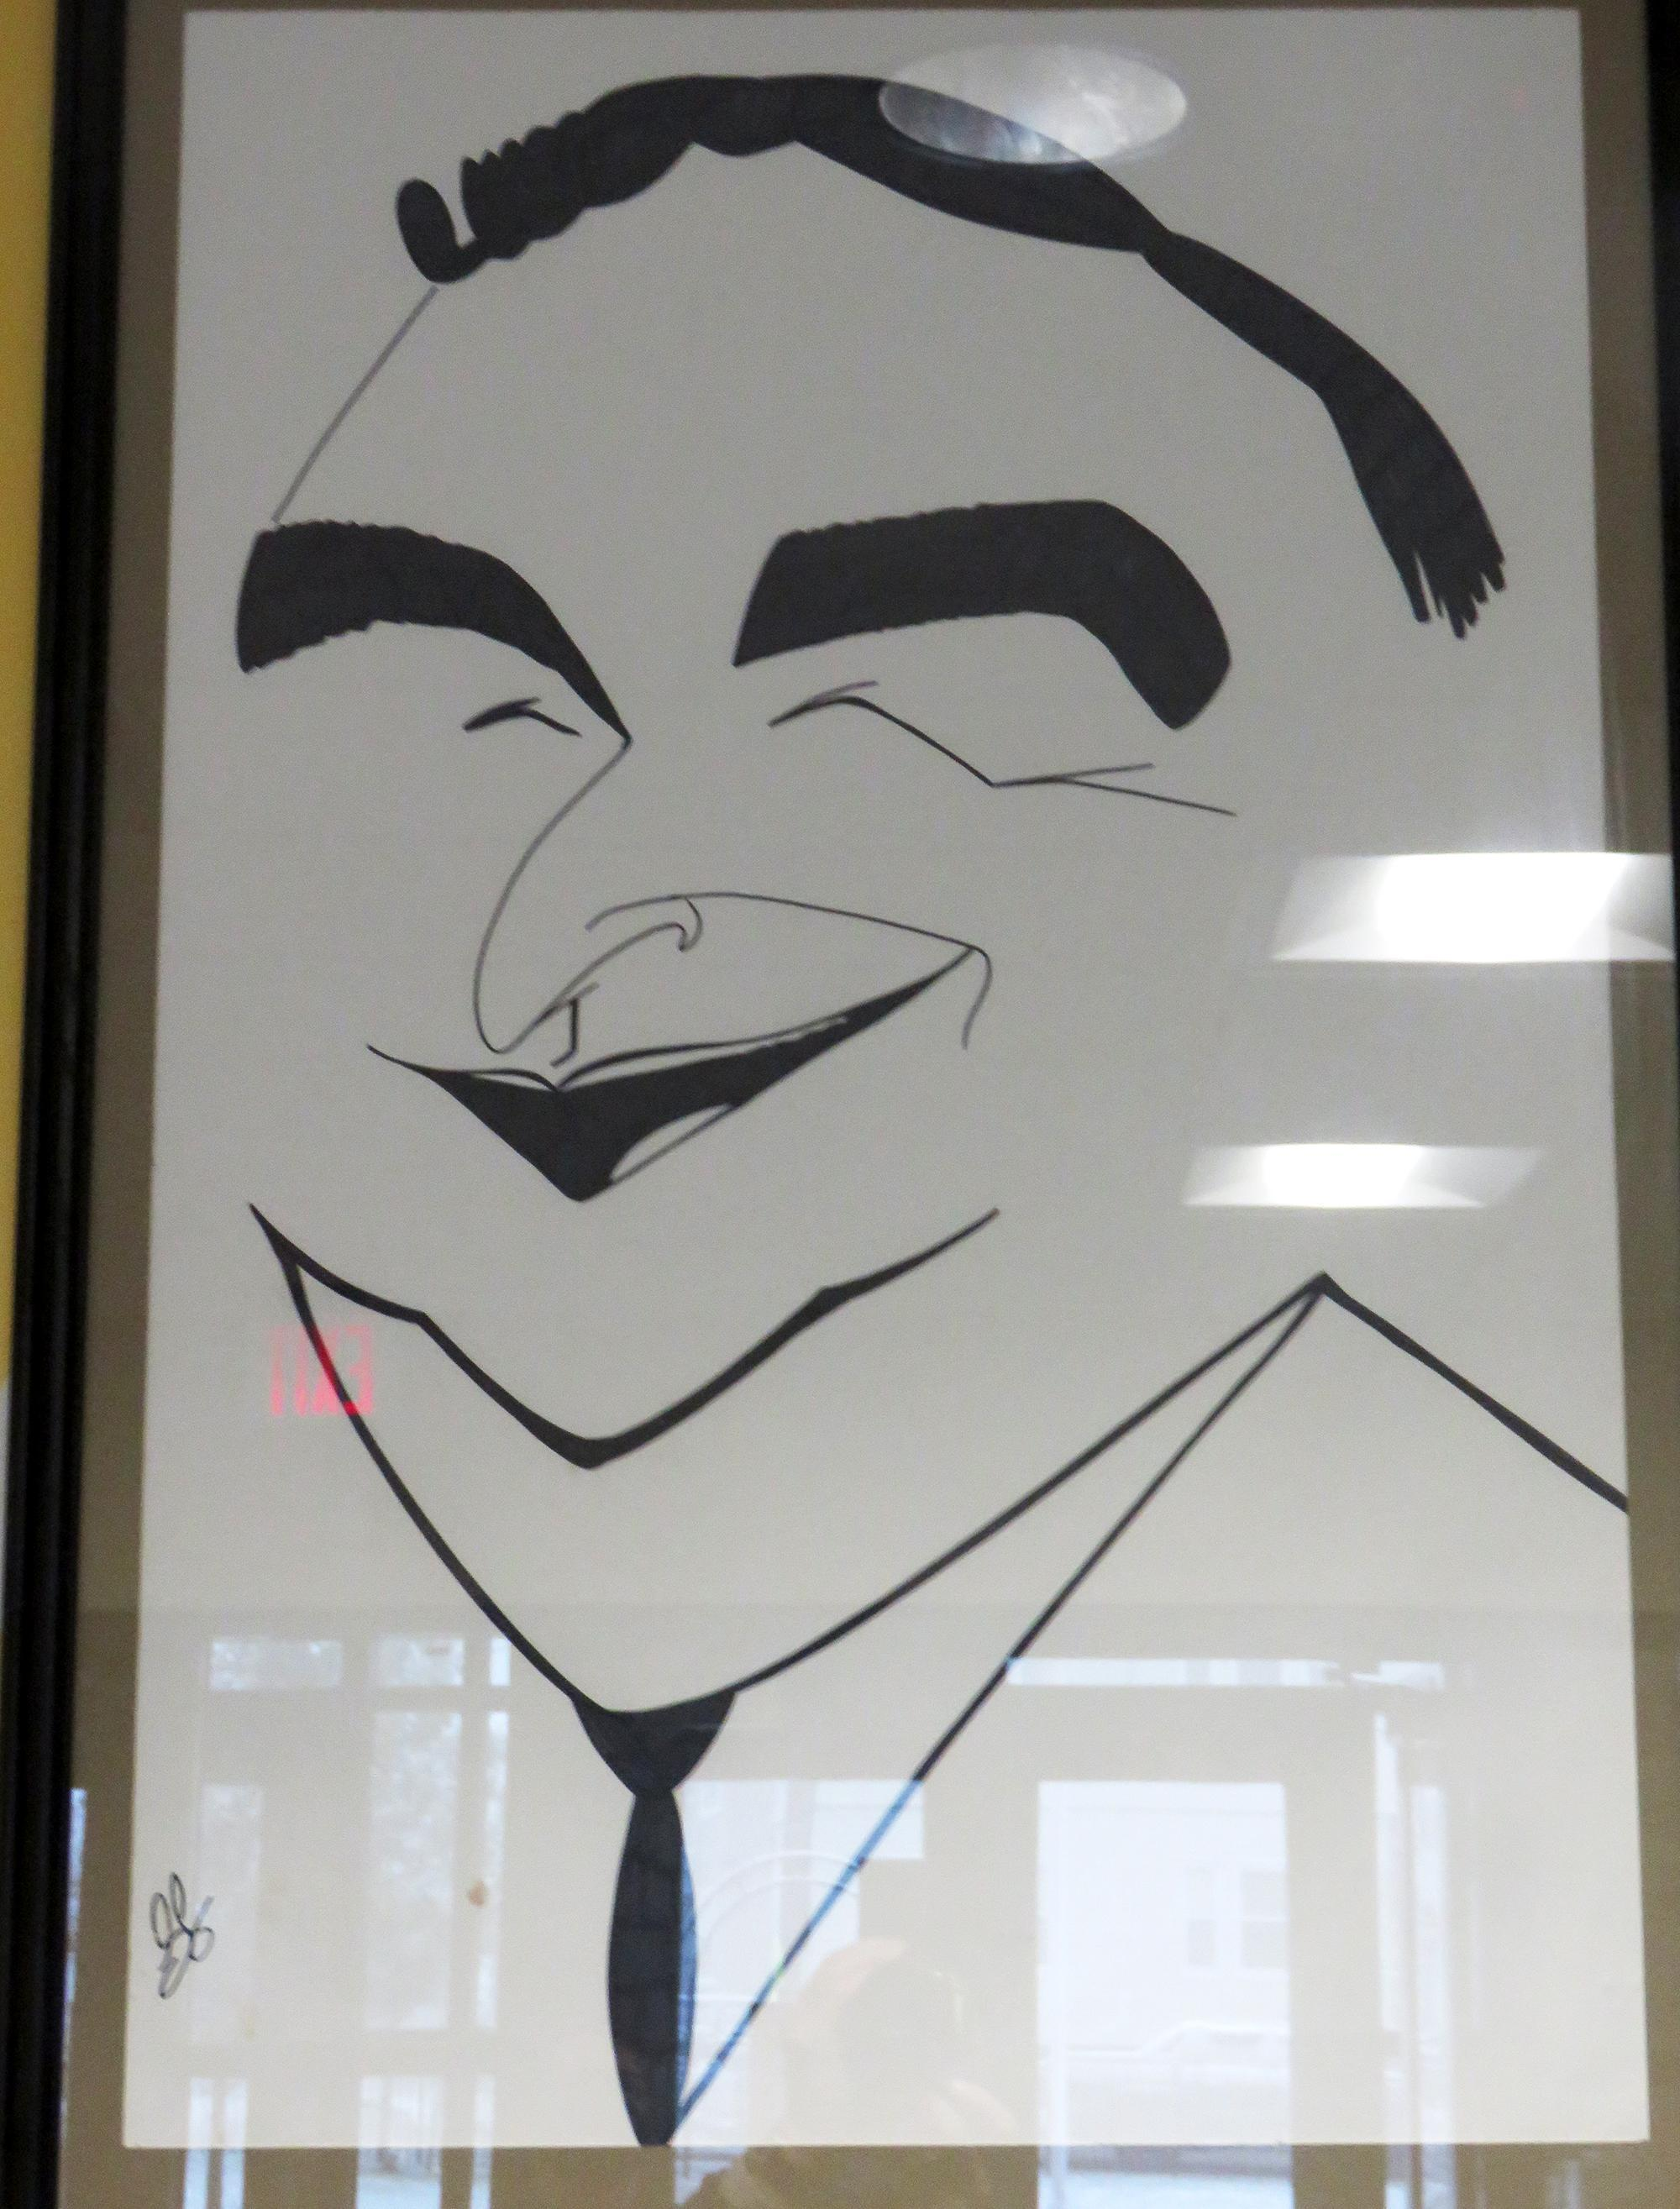 A caricature of a smiling George Keverian